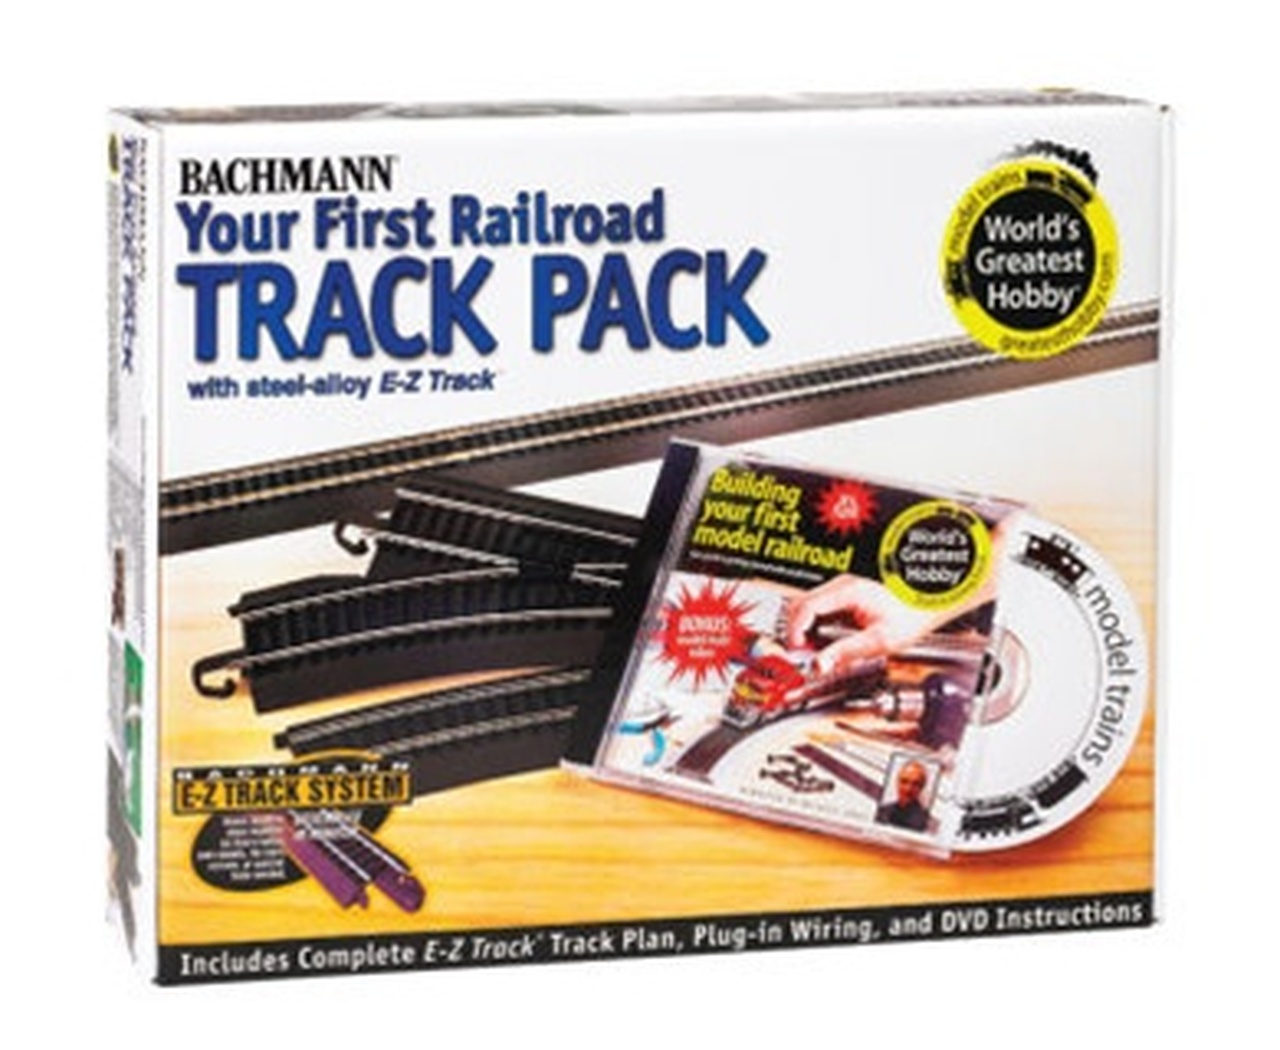 bachmann ho 44497 your first railroad track pack steel modeltrainstuff com [ 1280 x 1050 Pixel ]